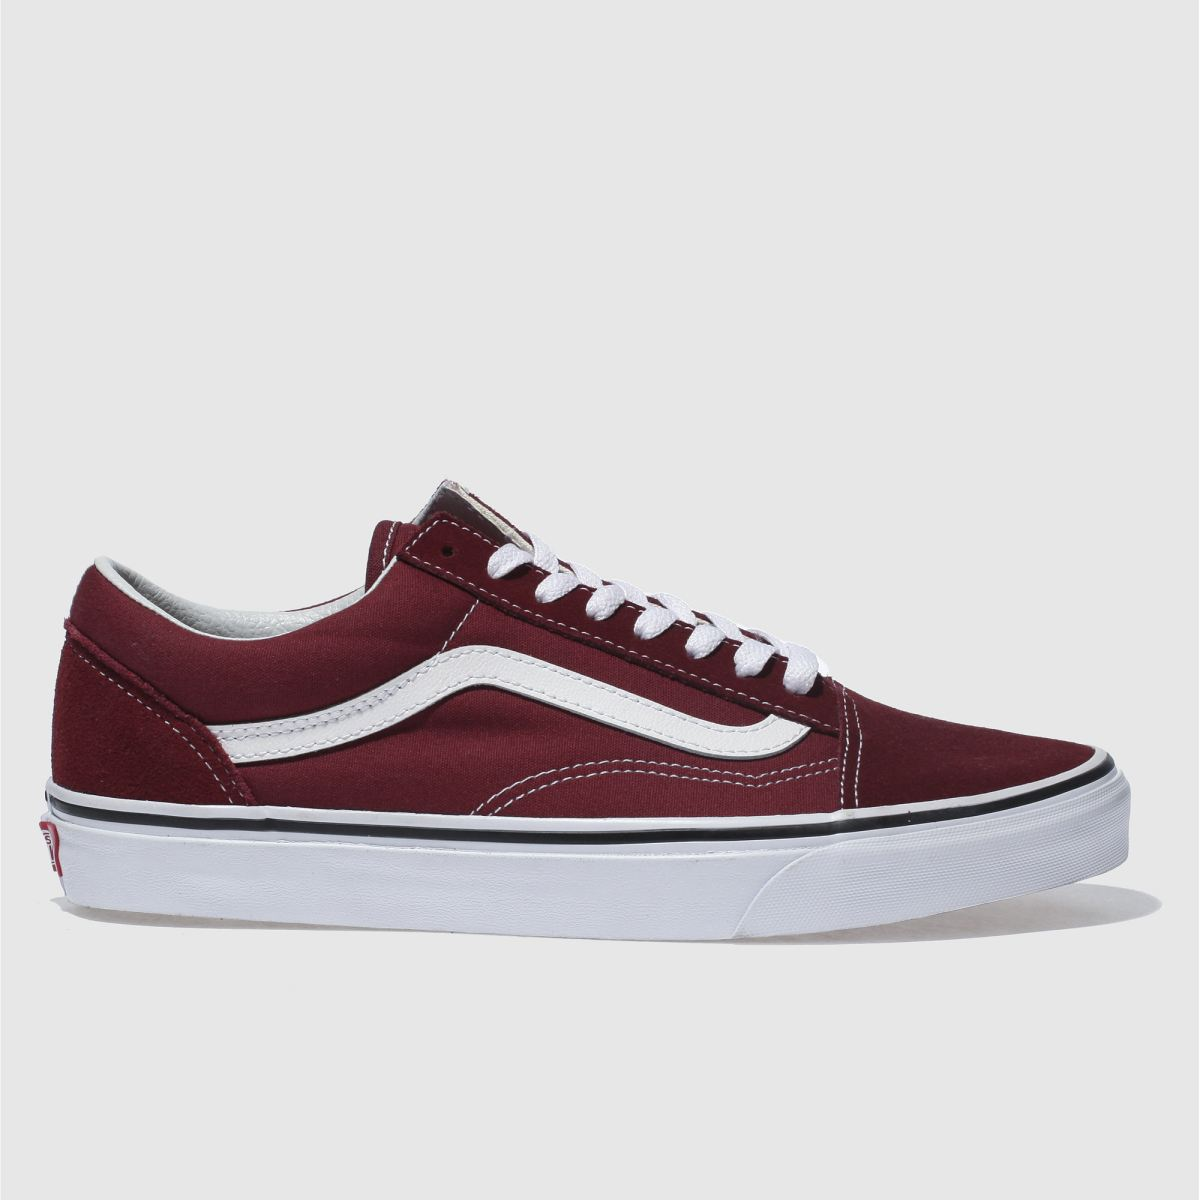 vans burgundy old skool trainers